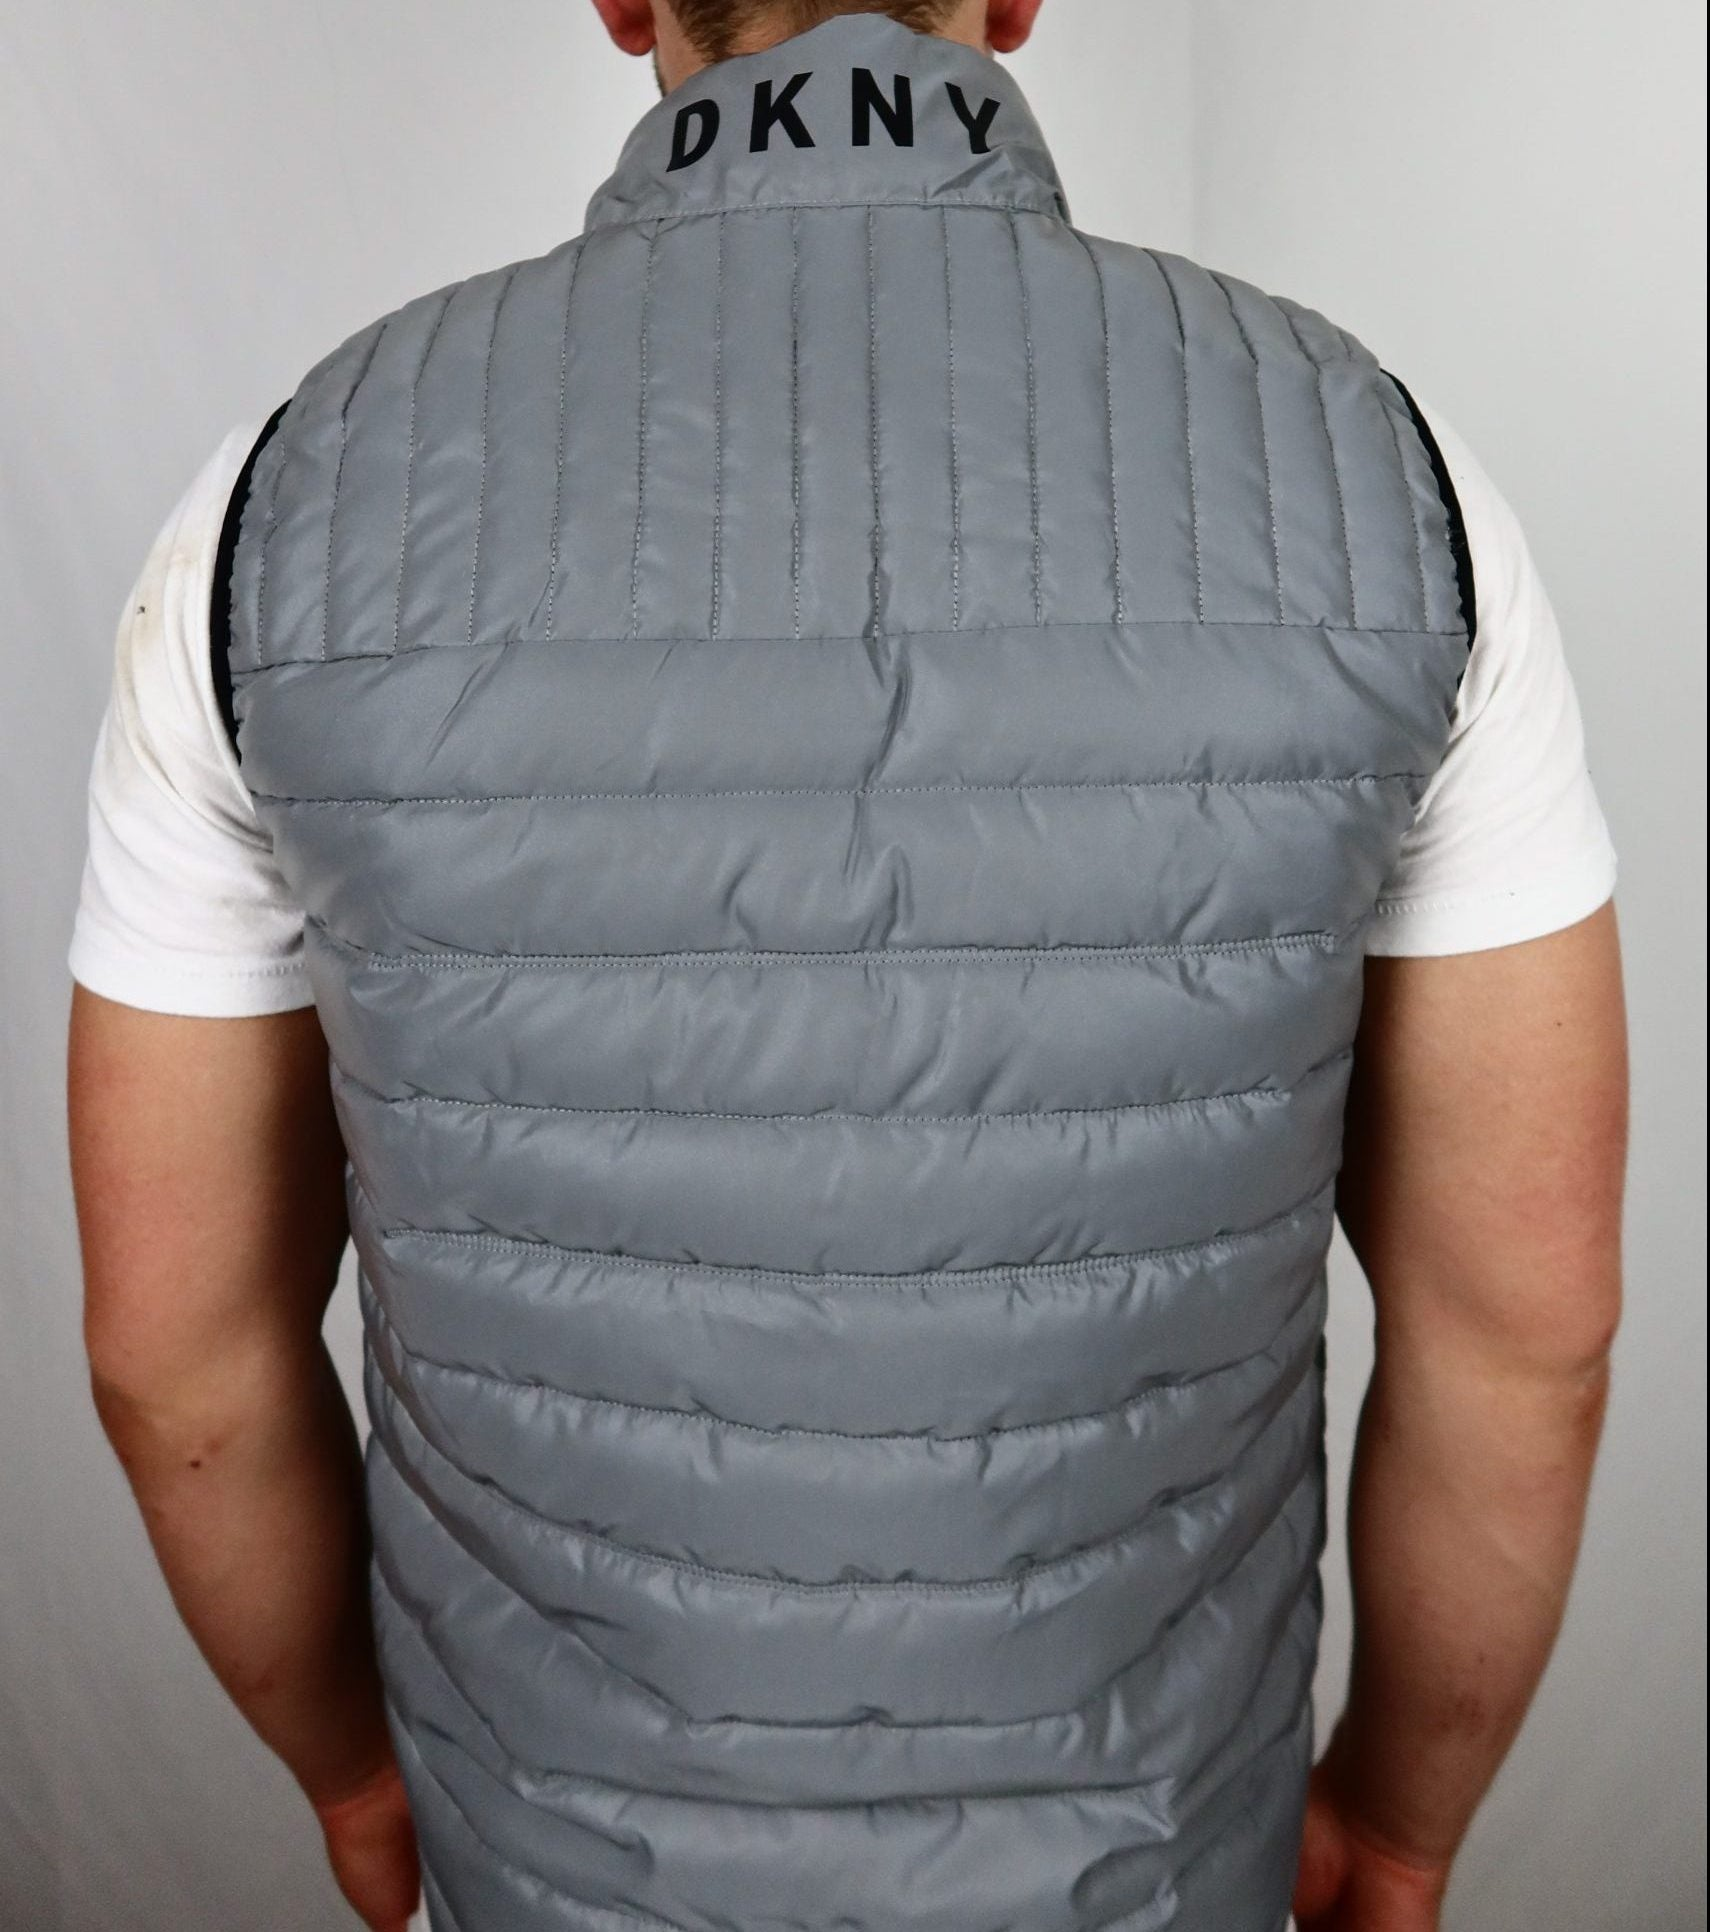 Sleeveless Reflective jacket